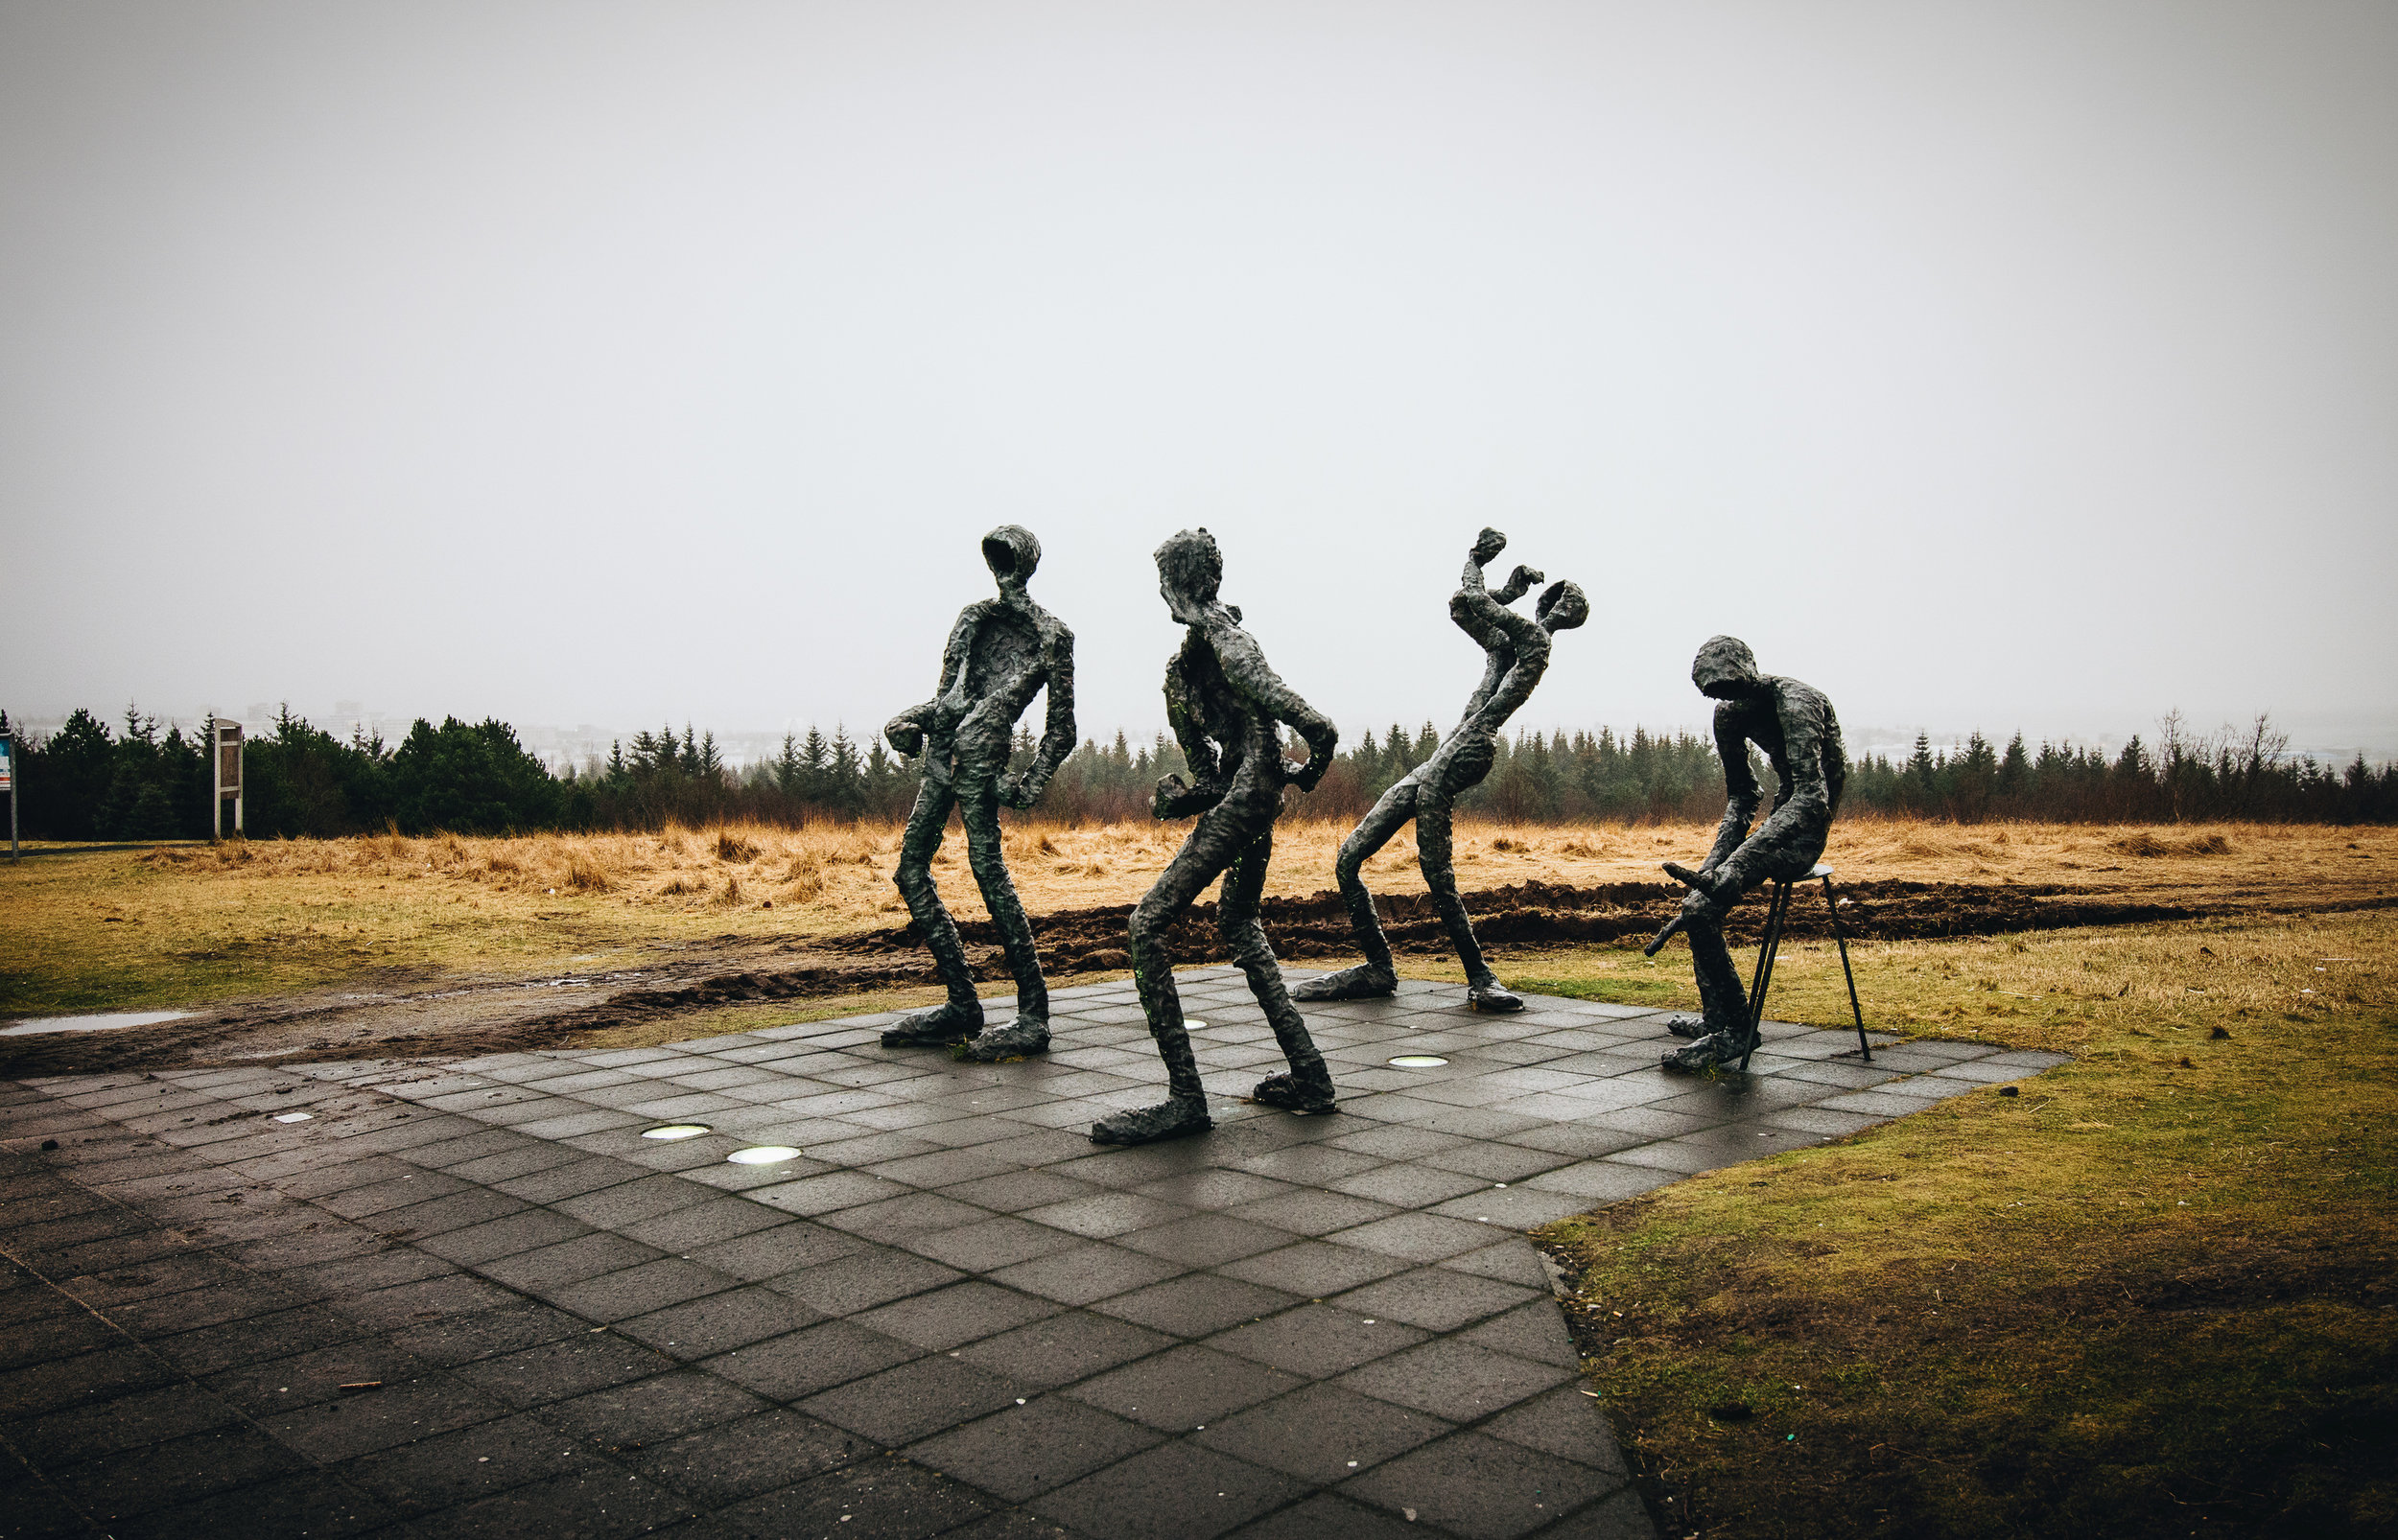 Nothing like sculpture art in the middle of nowhere.